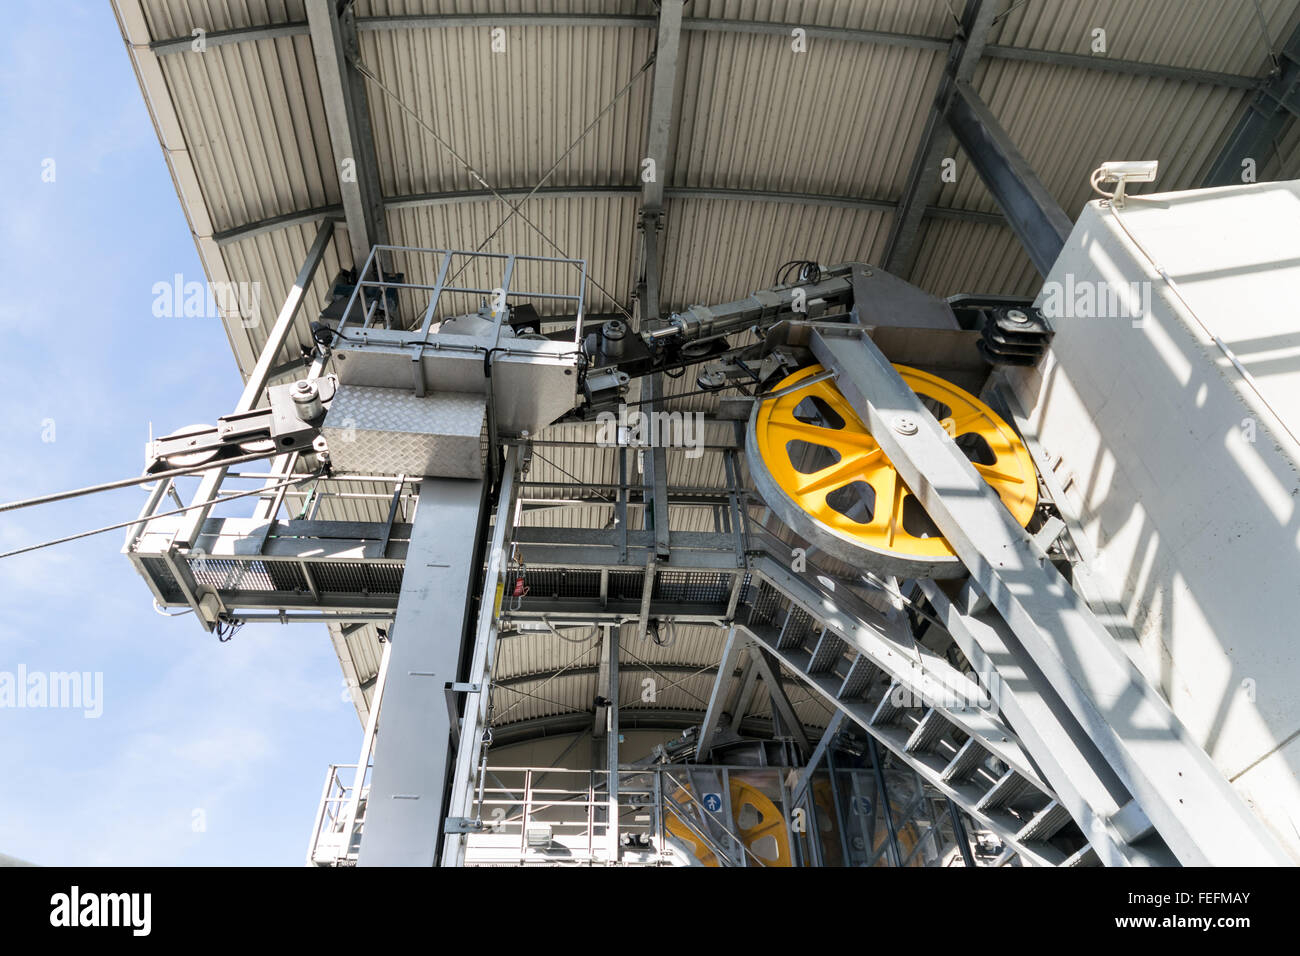 Detail of the mechanisms that allow the operation of a cableway respecting the safety rules. - Stock Image